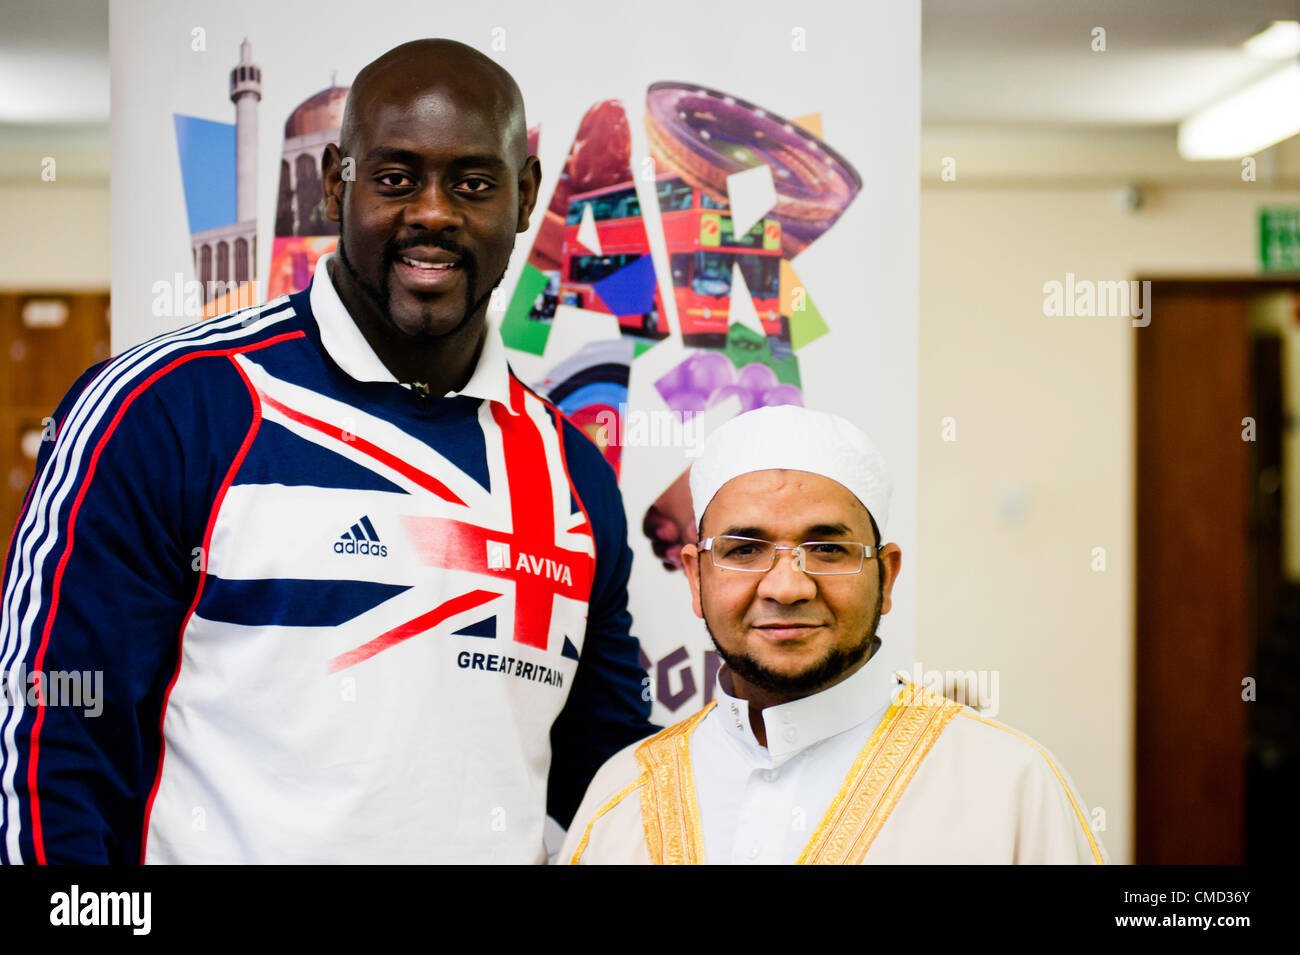 London, UK - 21 July 2012: Team GB Olympic discus thrower Abdul Buhari poses for a picture with Sheikh Khalifa Ezzat, Stock Photo